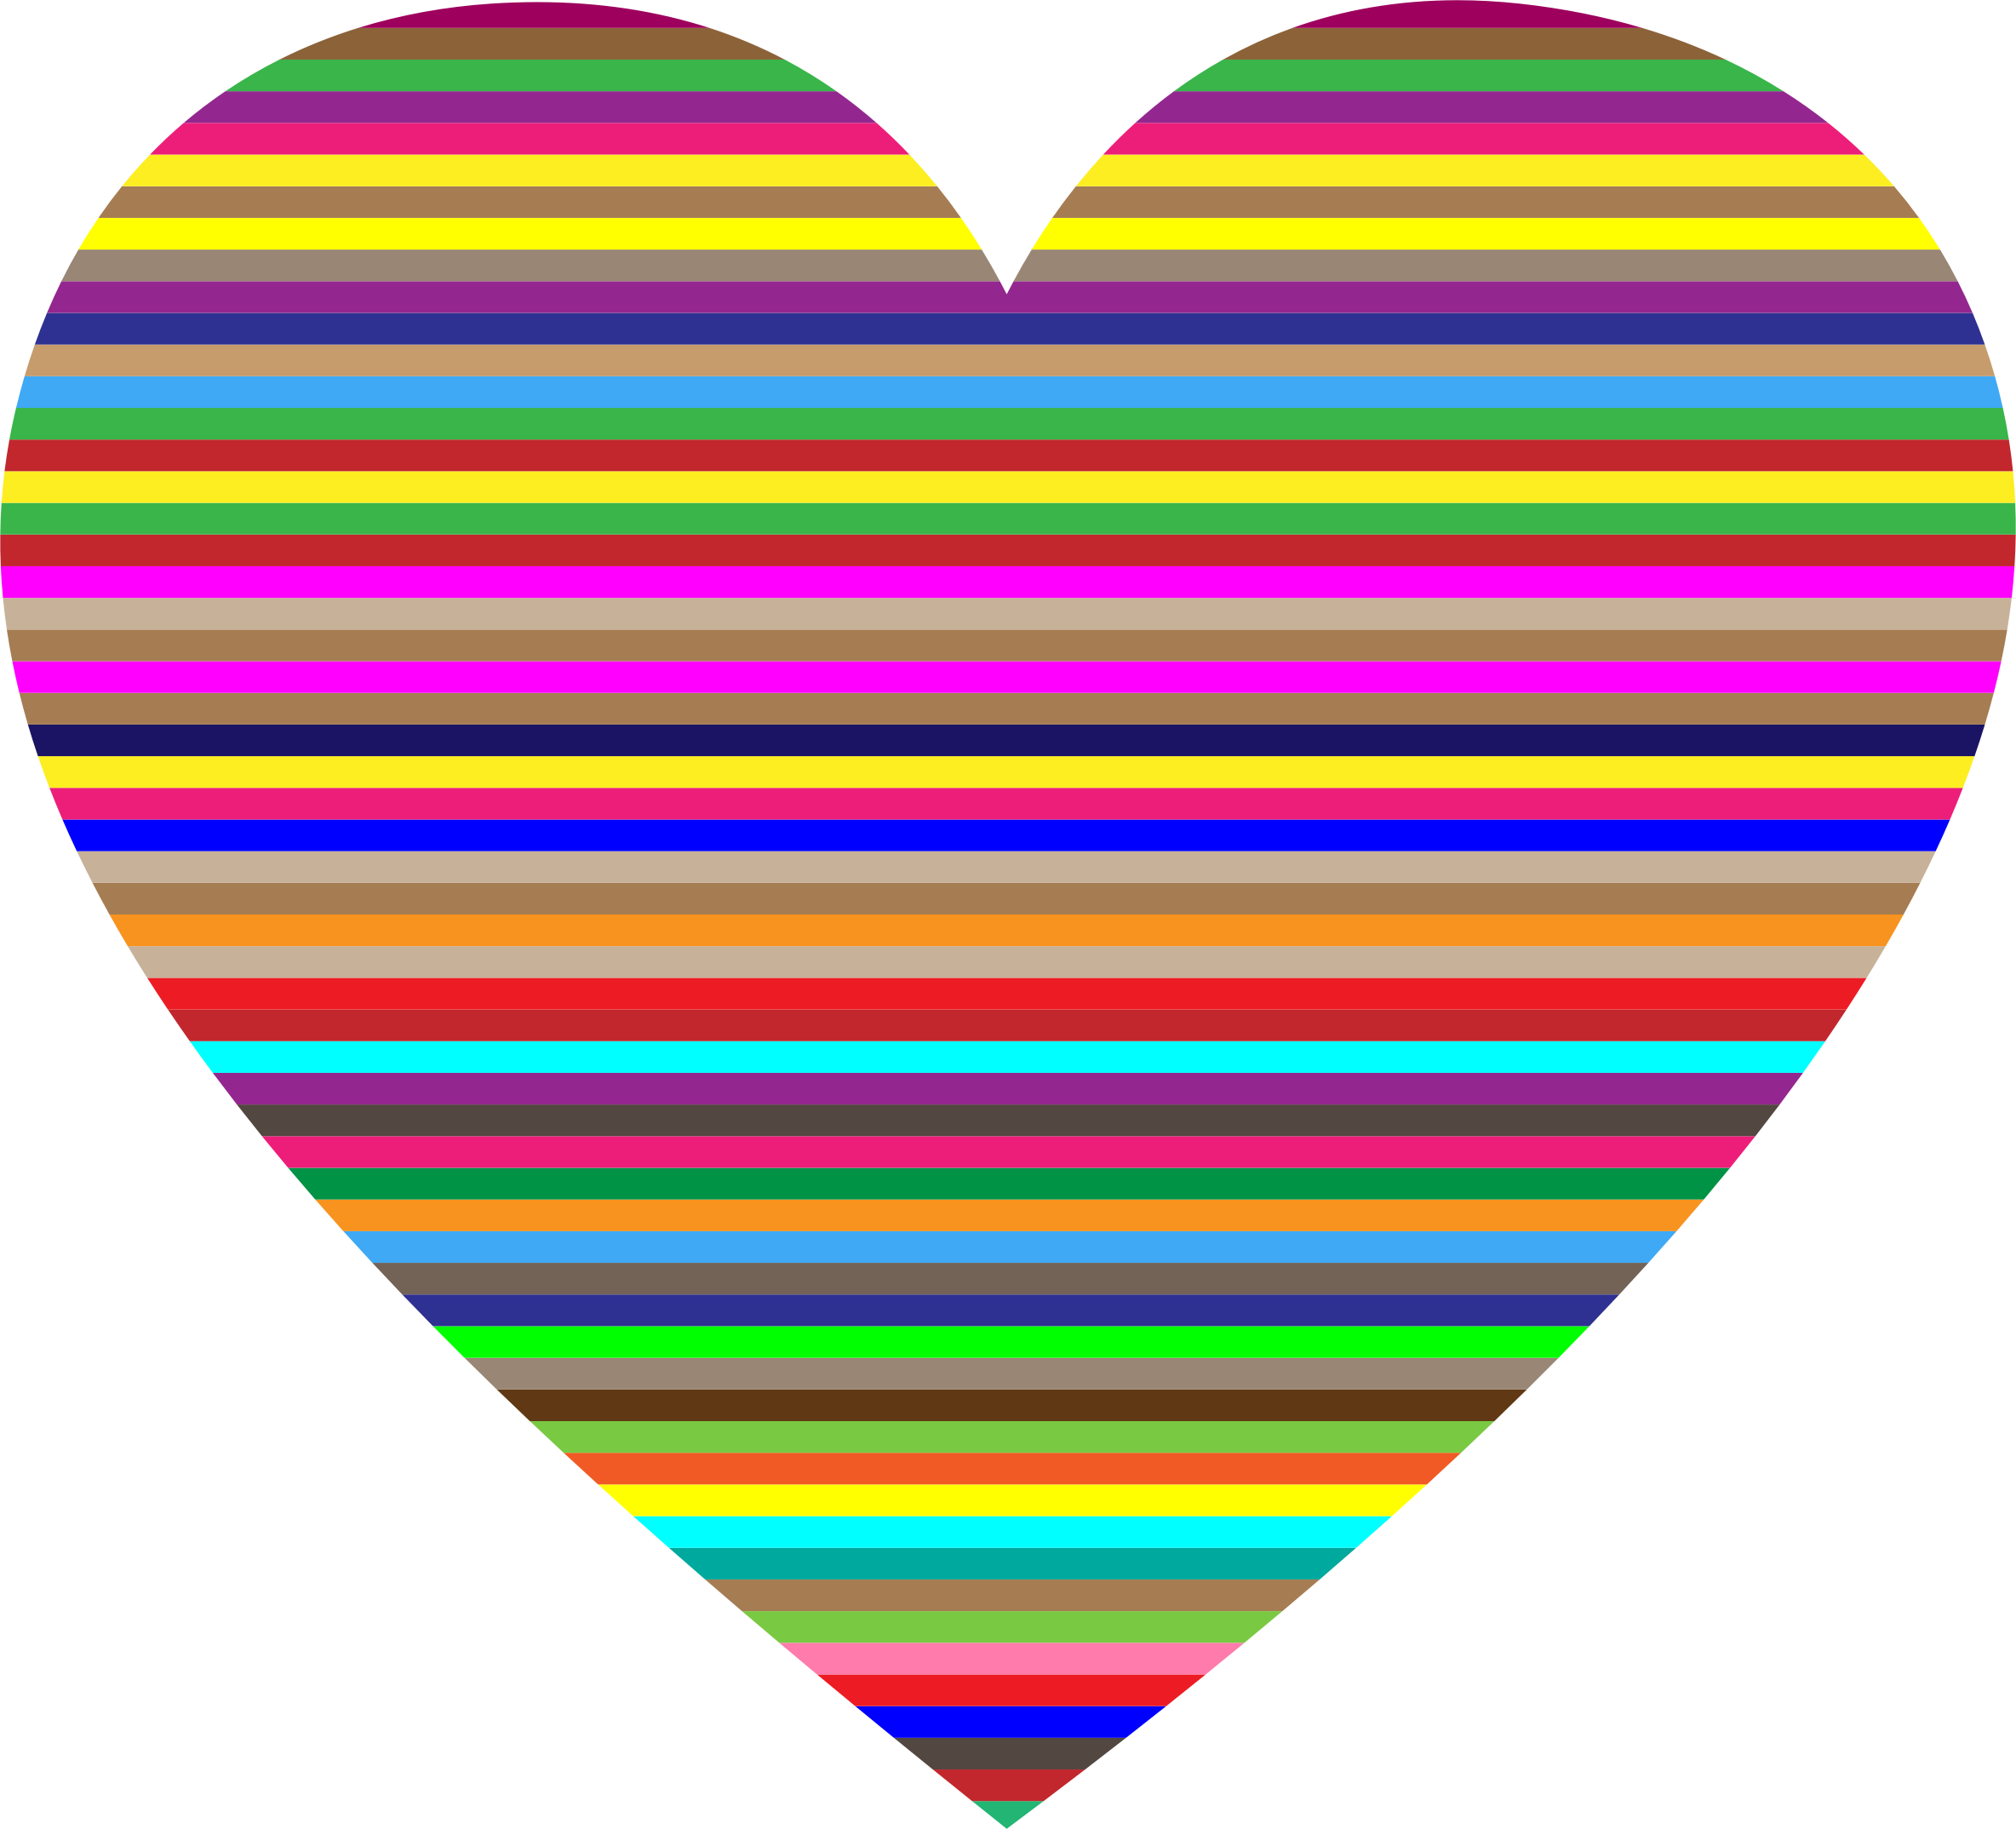 Colouful clipart Striped Clipart Horizontal Heart Striped